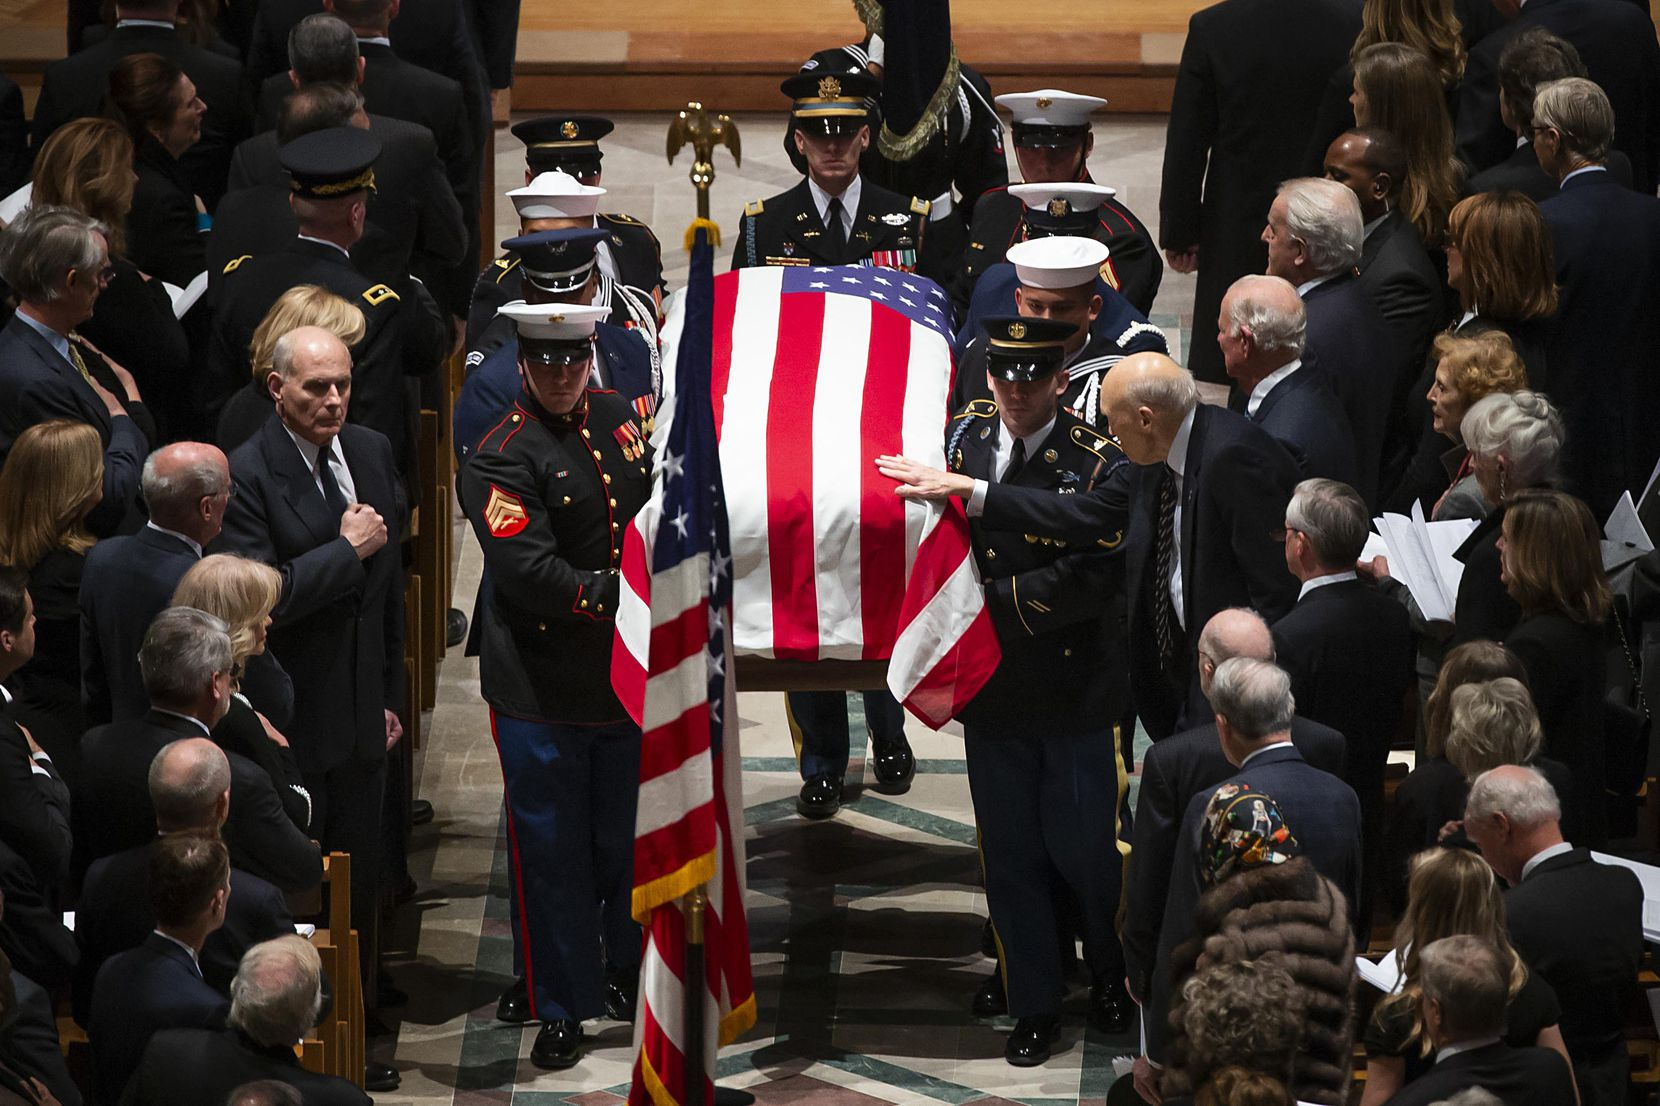 Former Sen. Alan Simpson reached out to touch the flag-draped casket of his friend as a military honor guard carried it from the Washington National Cathedral after Wednesday's state funeral.